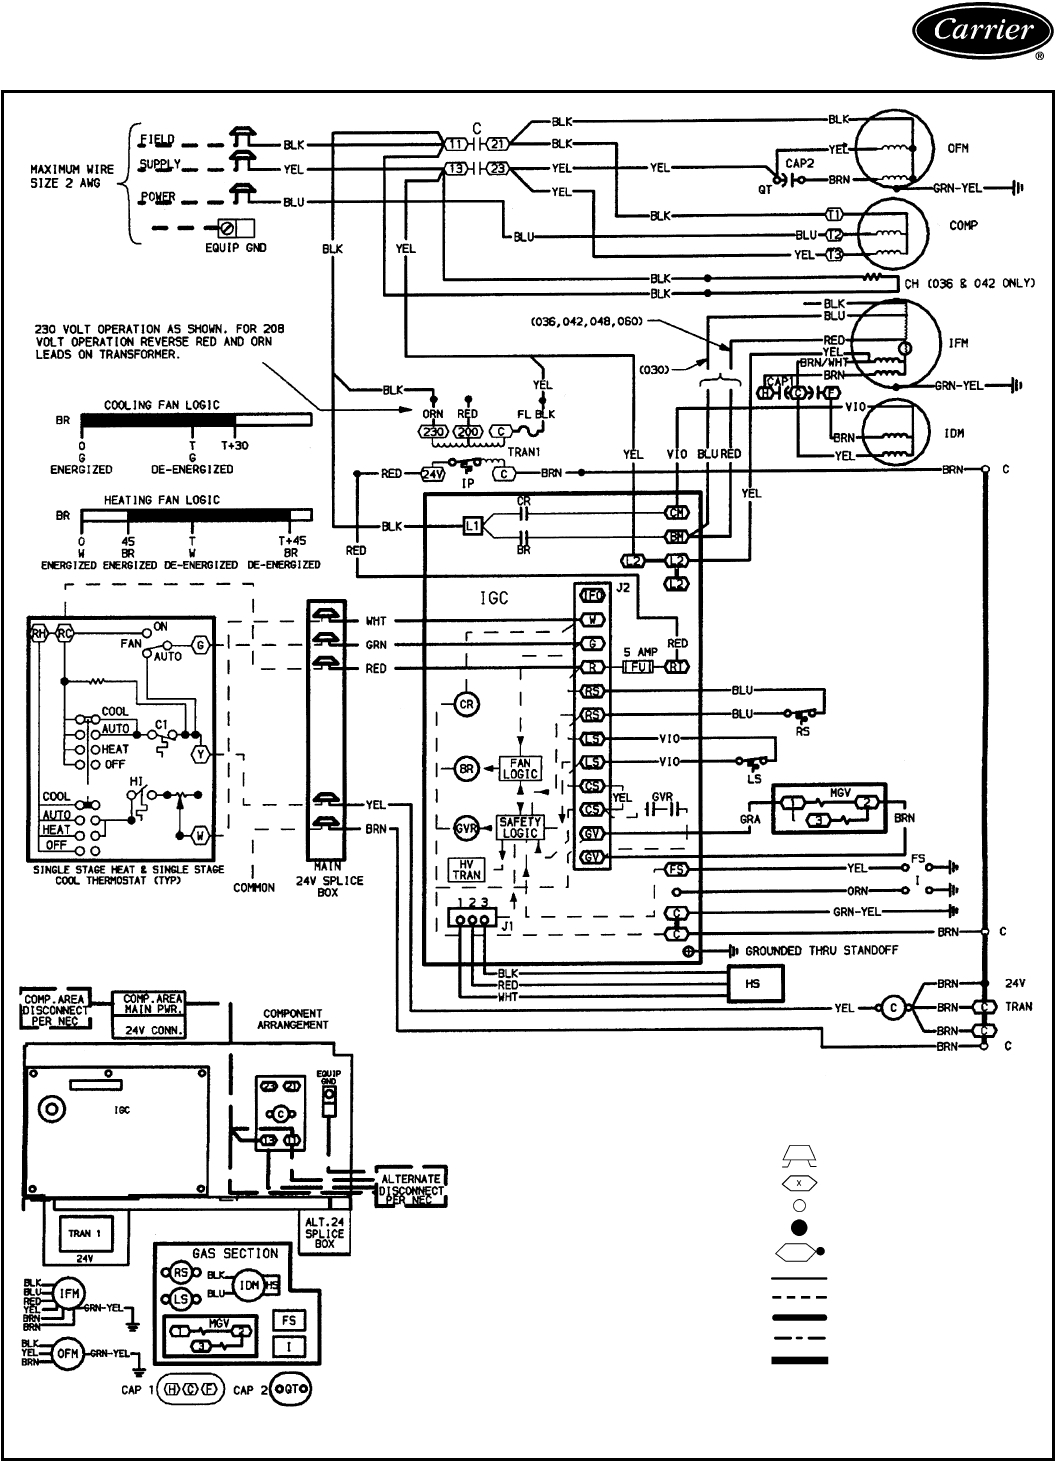 carrier infinity thermostat wiring diagram carrier furnace wiring diagram  download carrier infinity thermostat manual with carrier infinity heat pump  manual